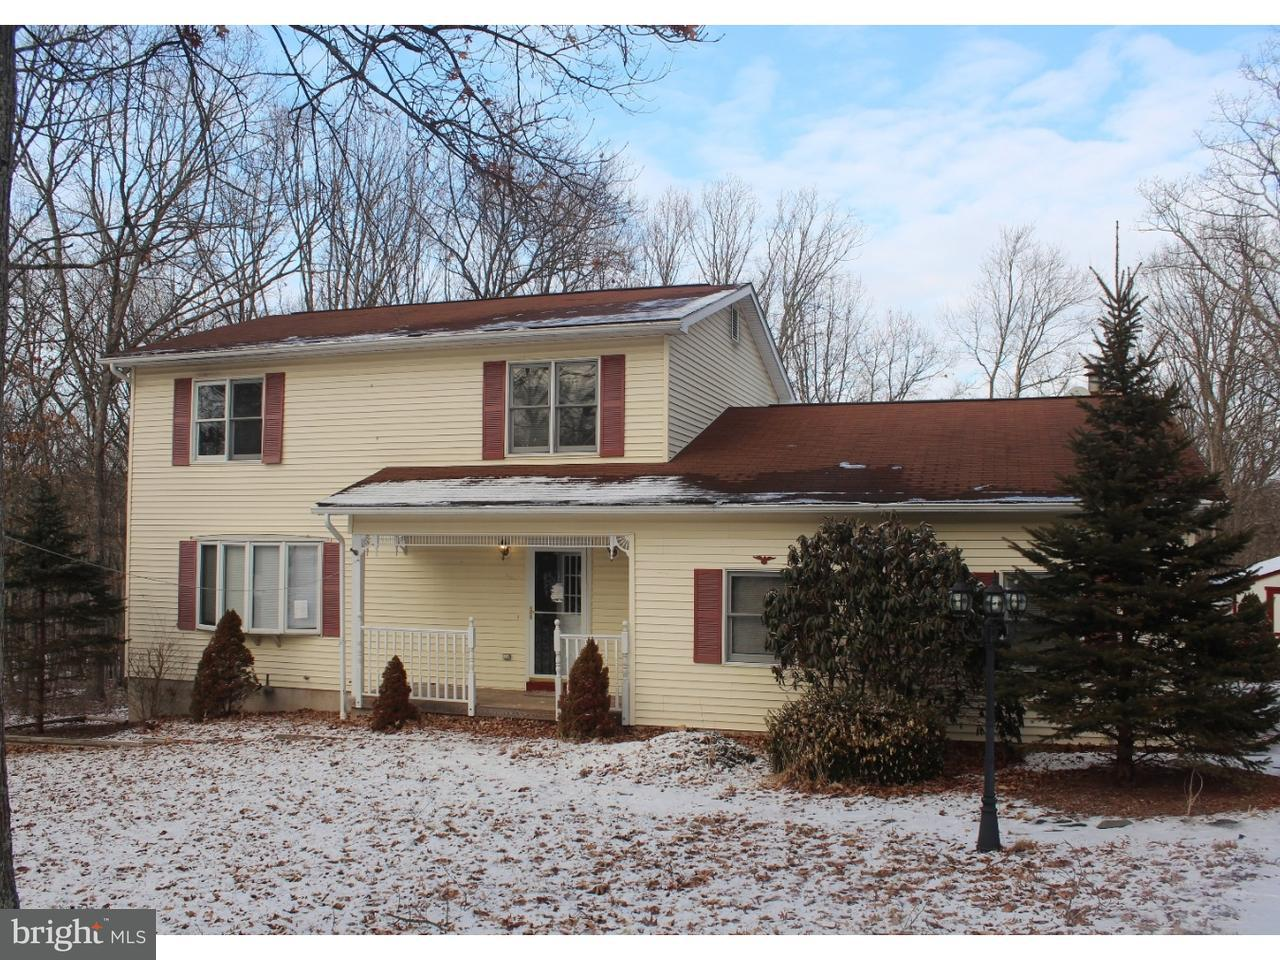 Single Family Home for Sale at 104 HEBULA Road Milford, Pennsylvania 18337 United States